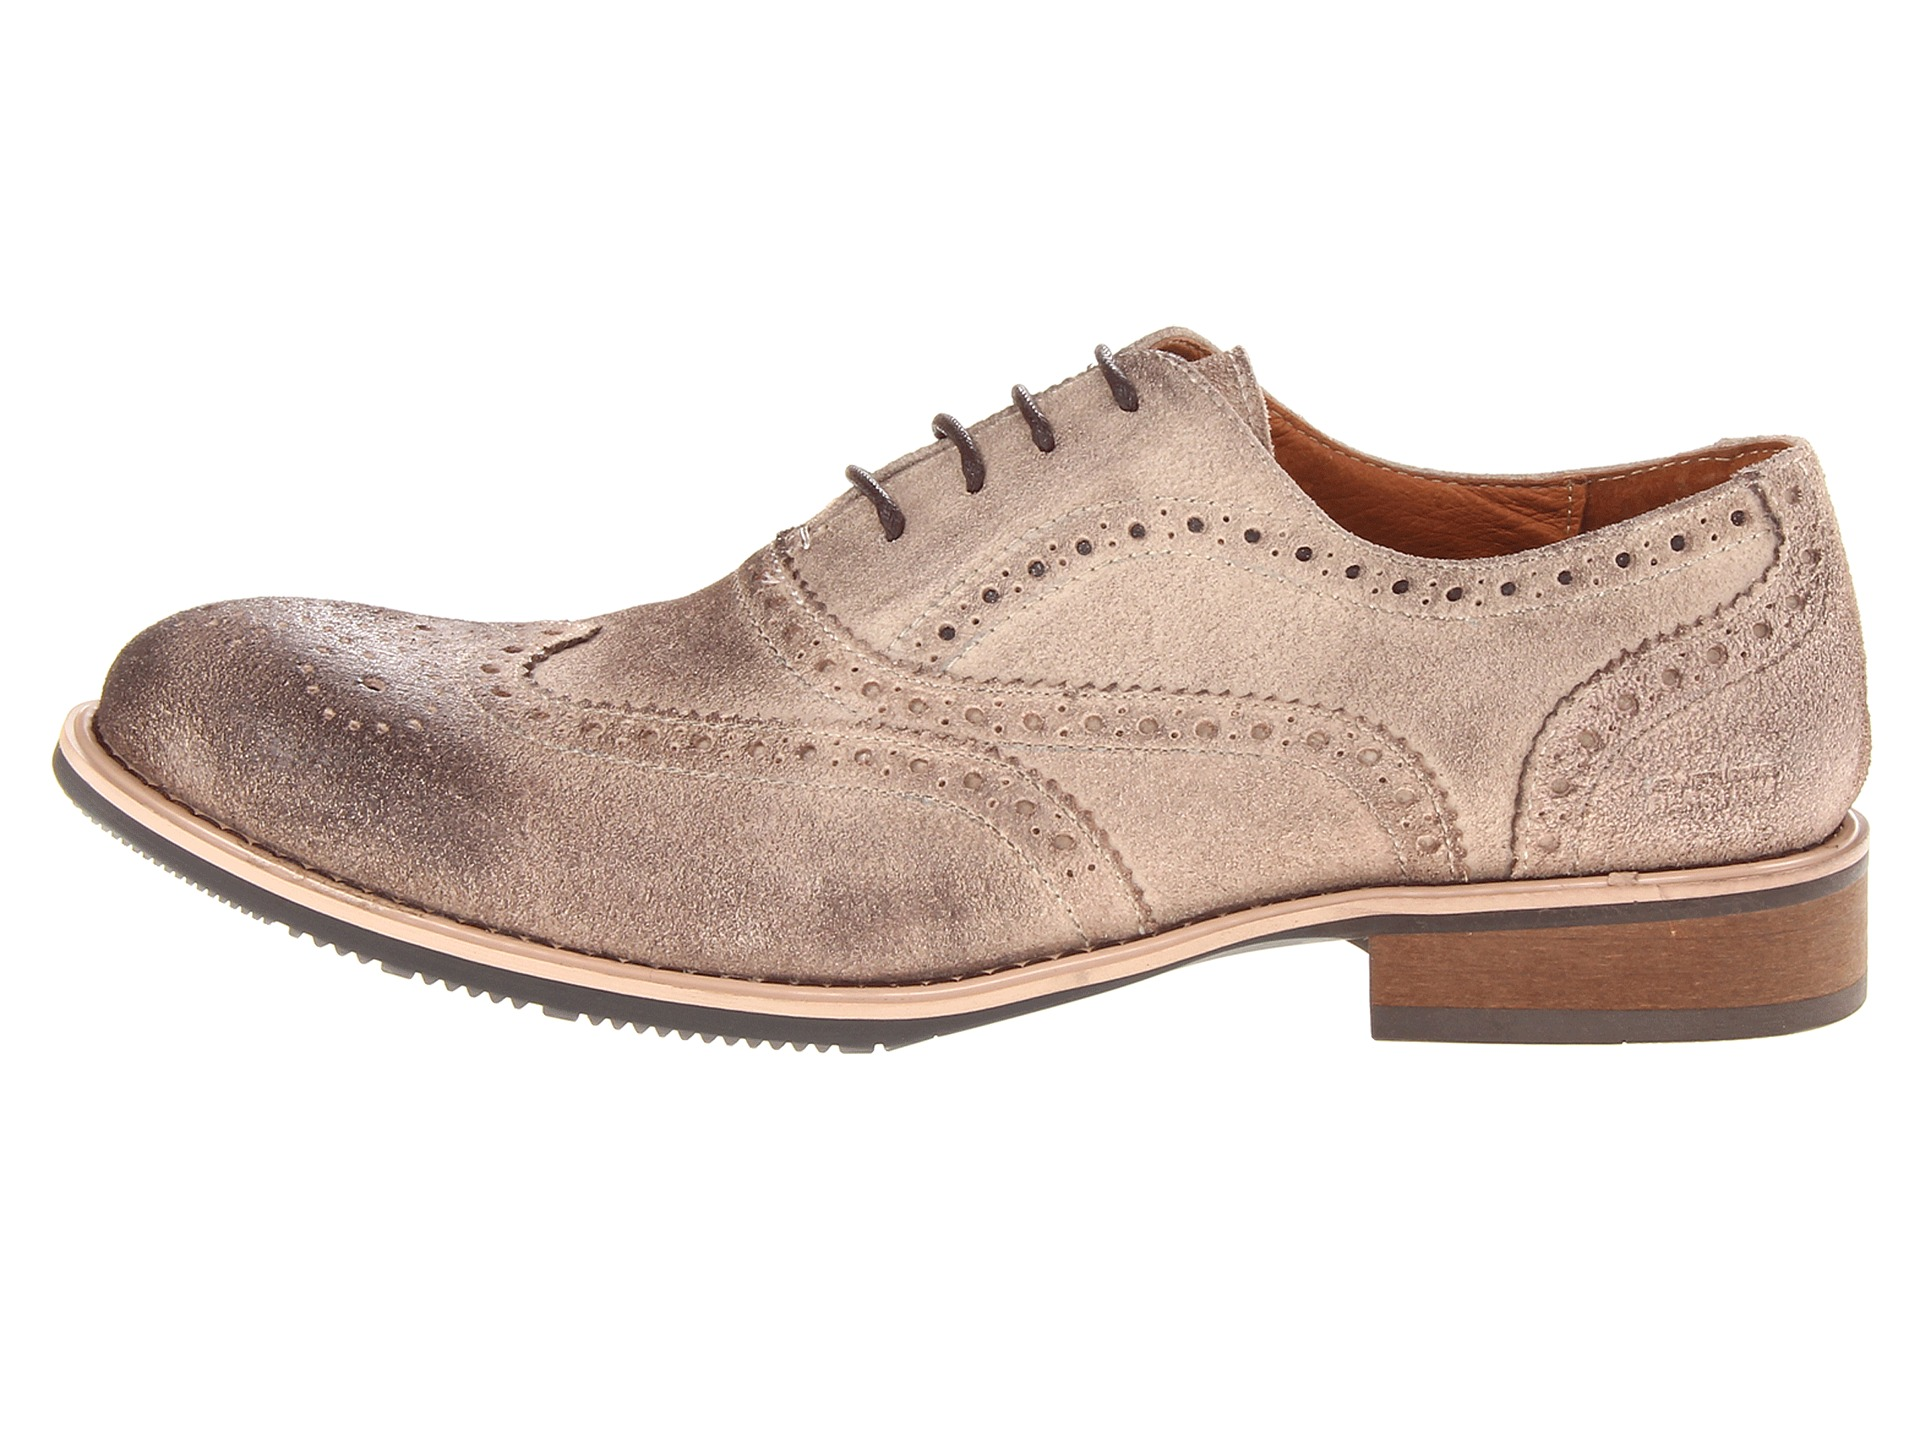 Kenneth Cole Reaction Rogue Trip Sand Leather